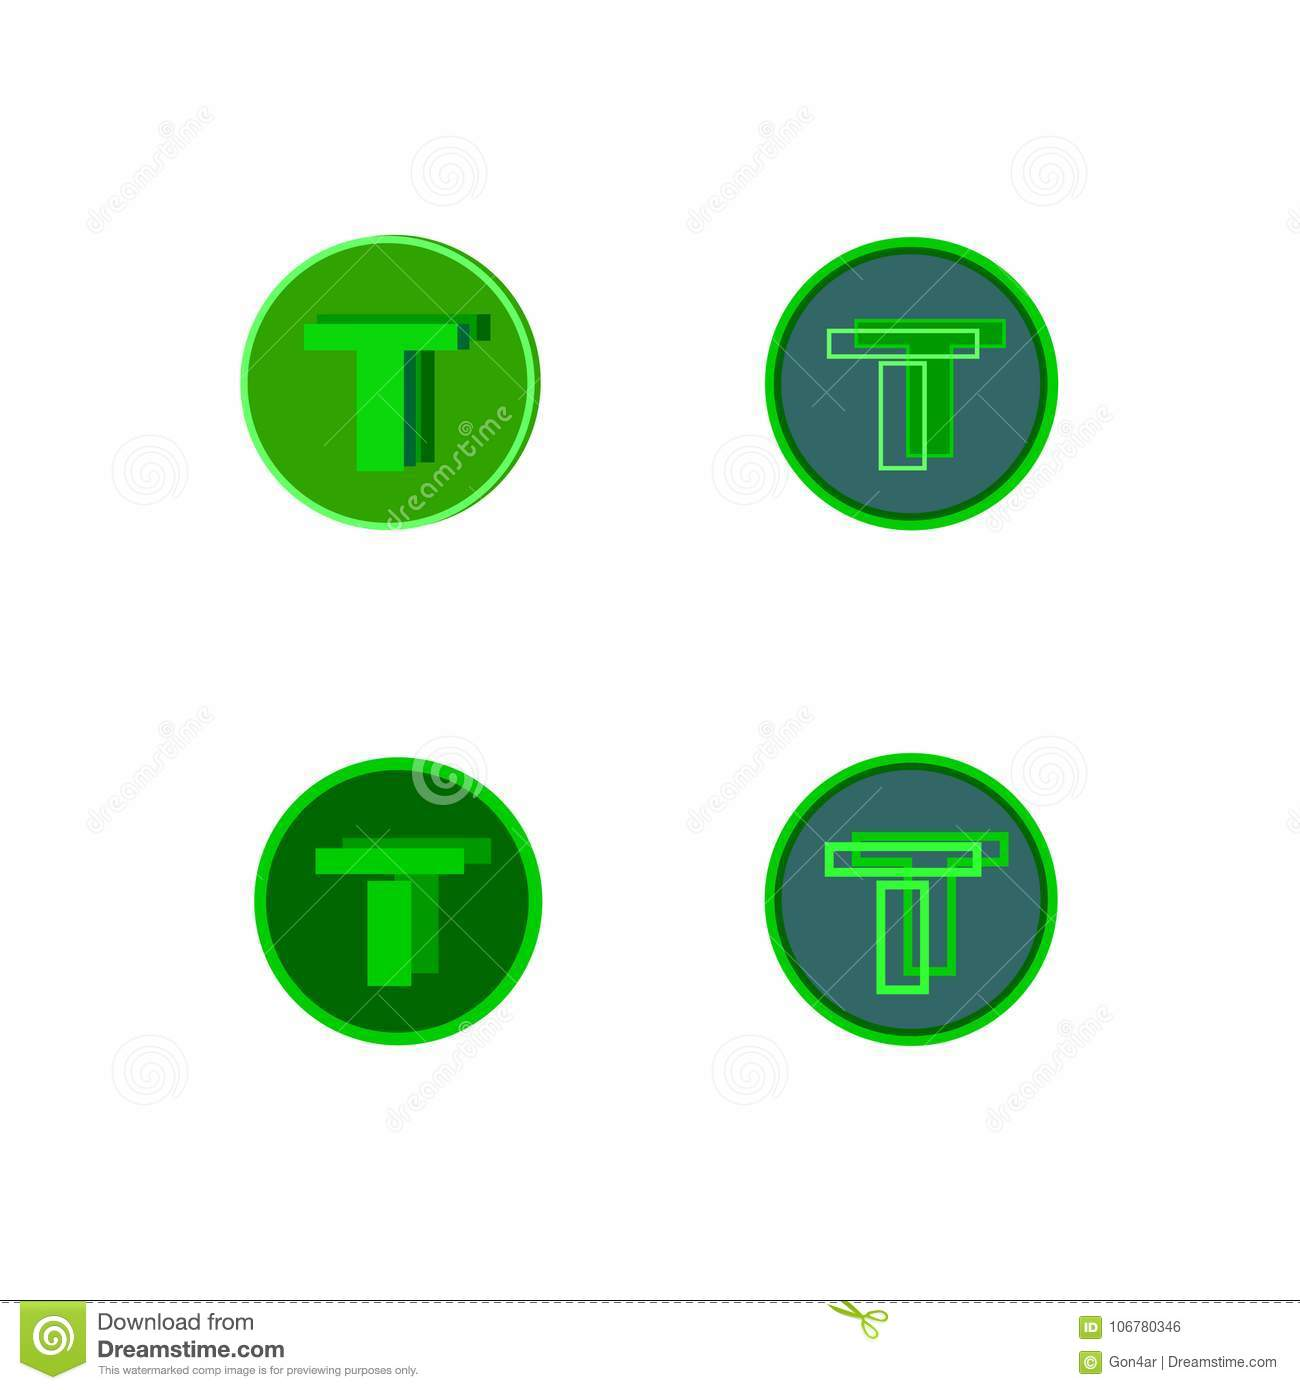 Double Letter Of The Alphabet T In A Green Circleur Layout On The Sheet Stock Vector